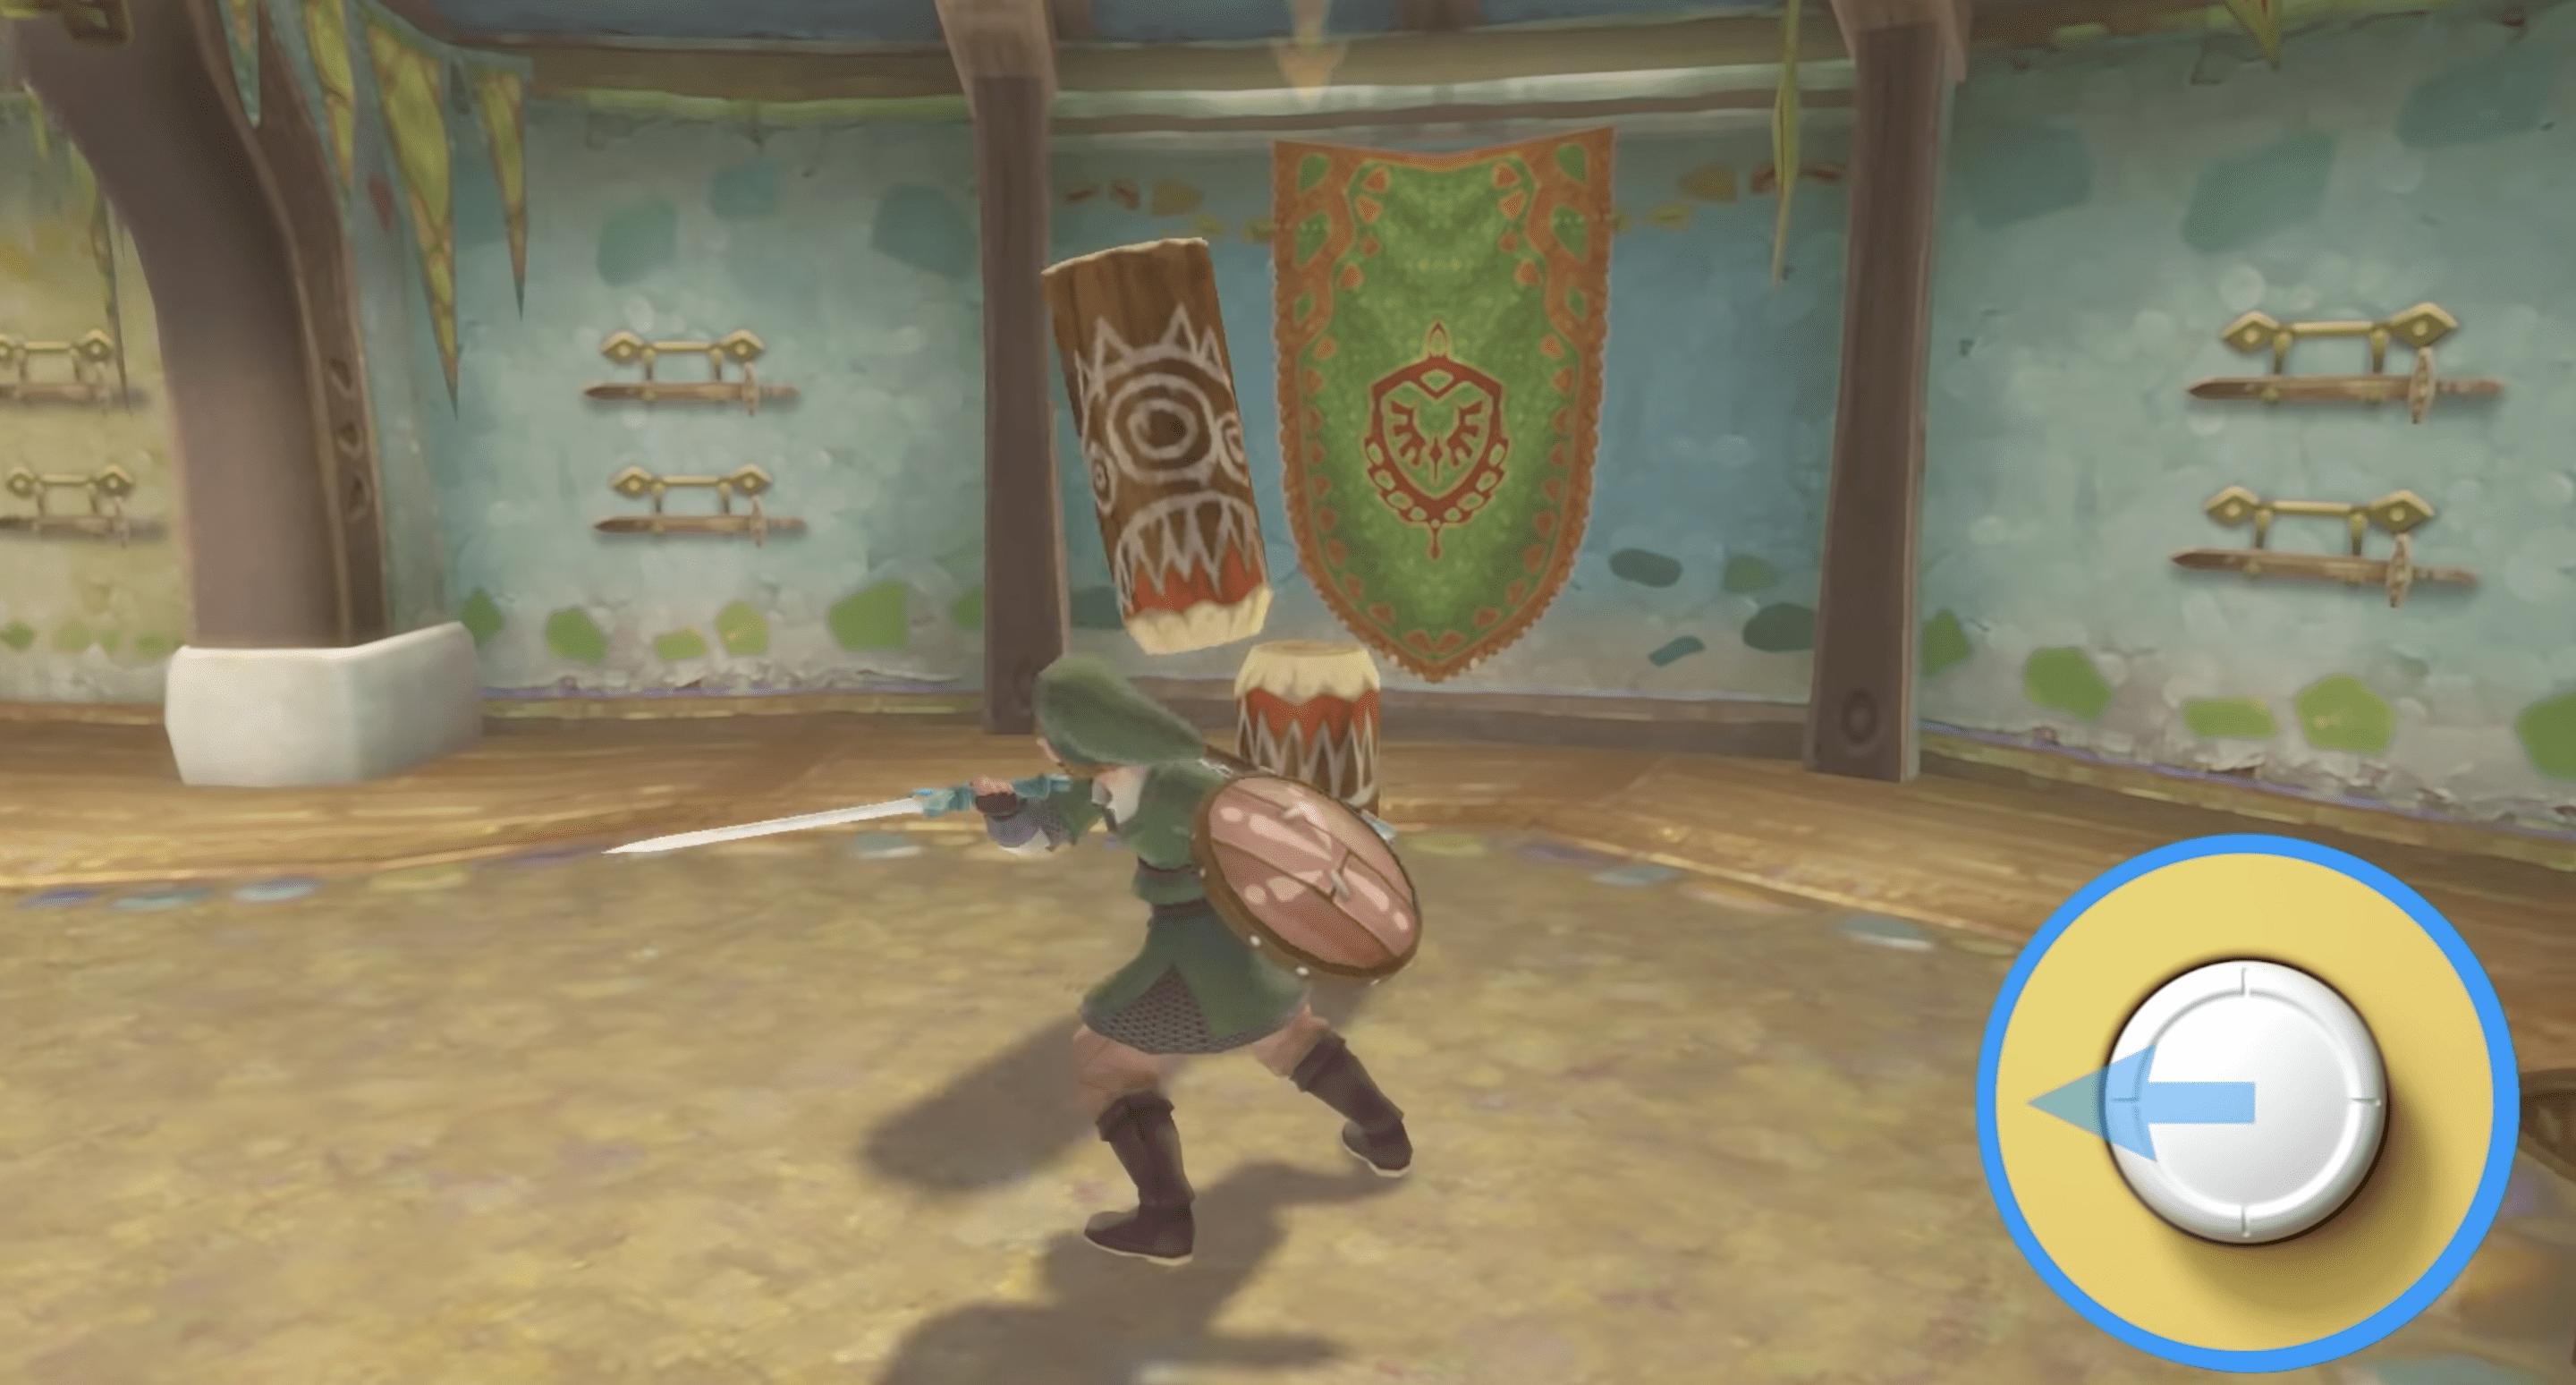 Link using control sticks to control his sword in Skyward Sword rather than motion controls